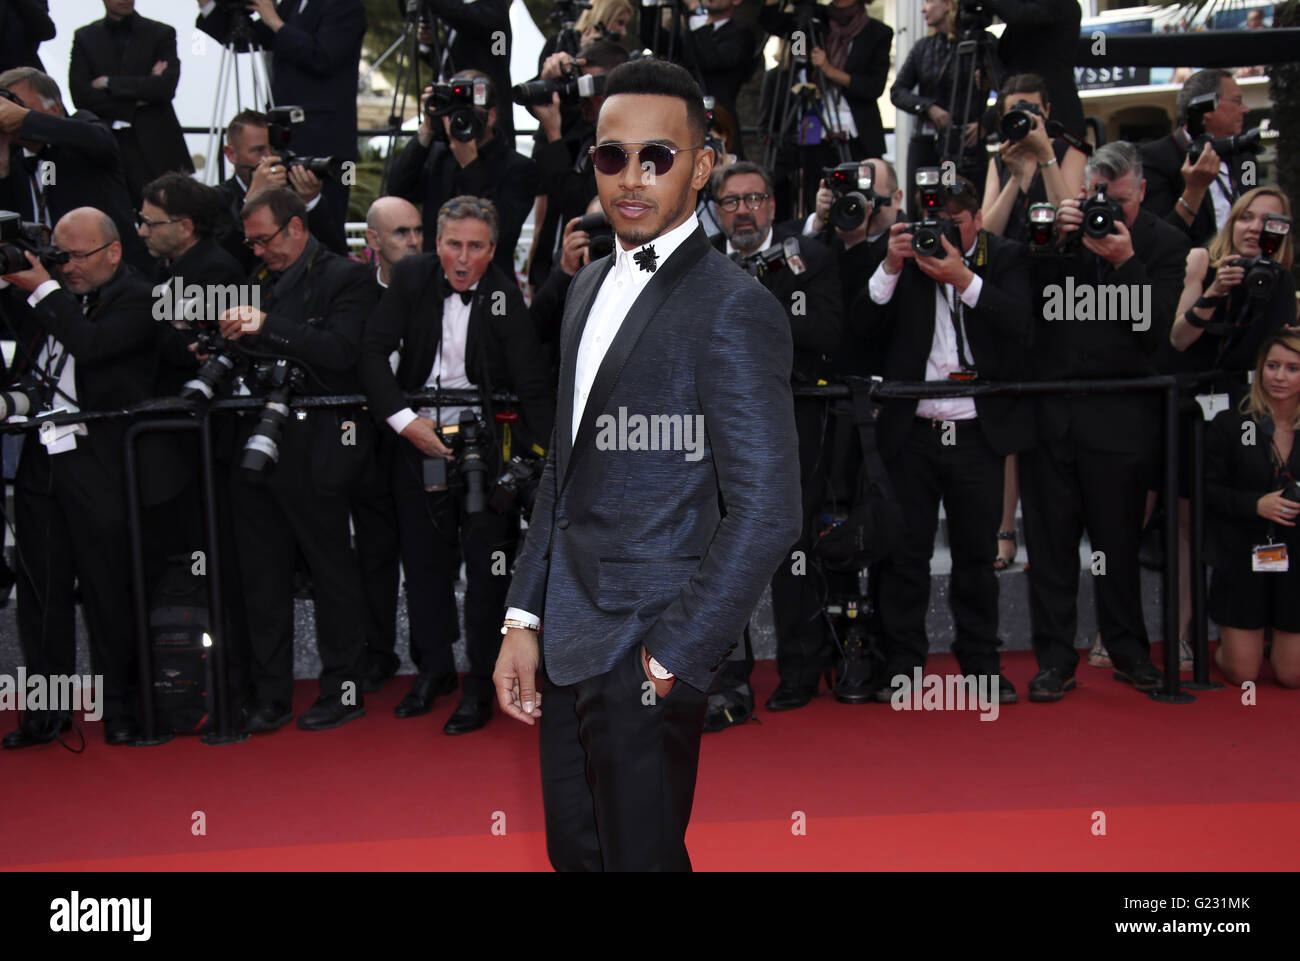 Lewis Hamilton poses for photographers upon arrival at the screening of the film La Fille Inconnue (The Unkown Girl) - Stock Image